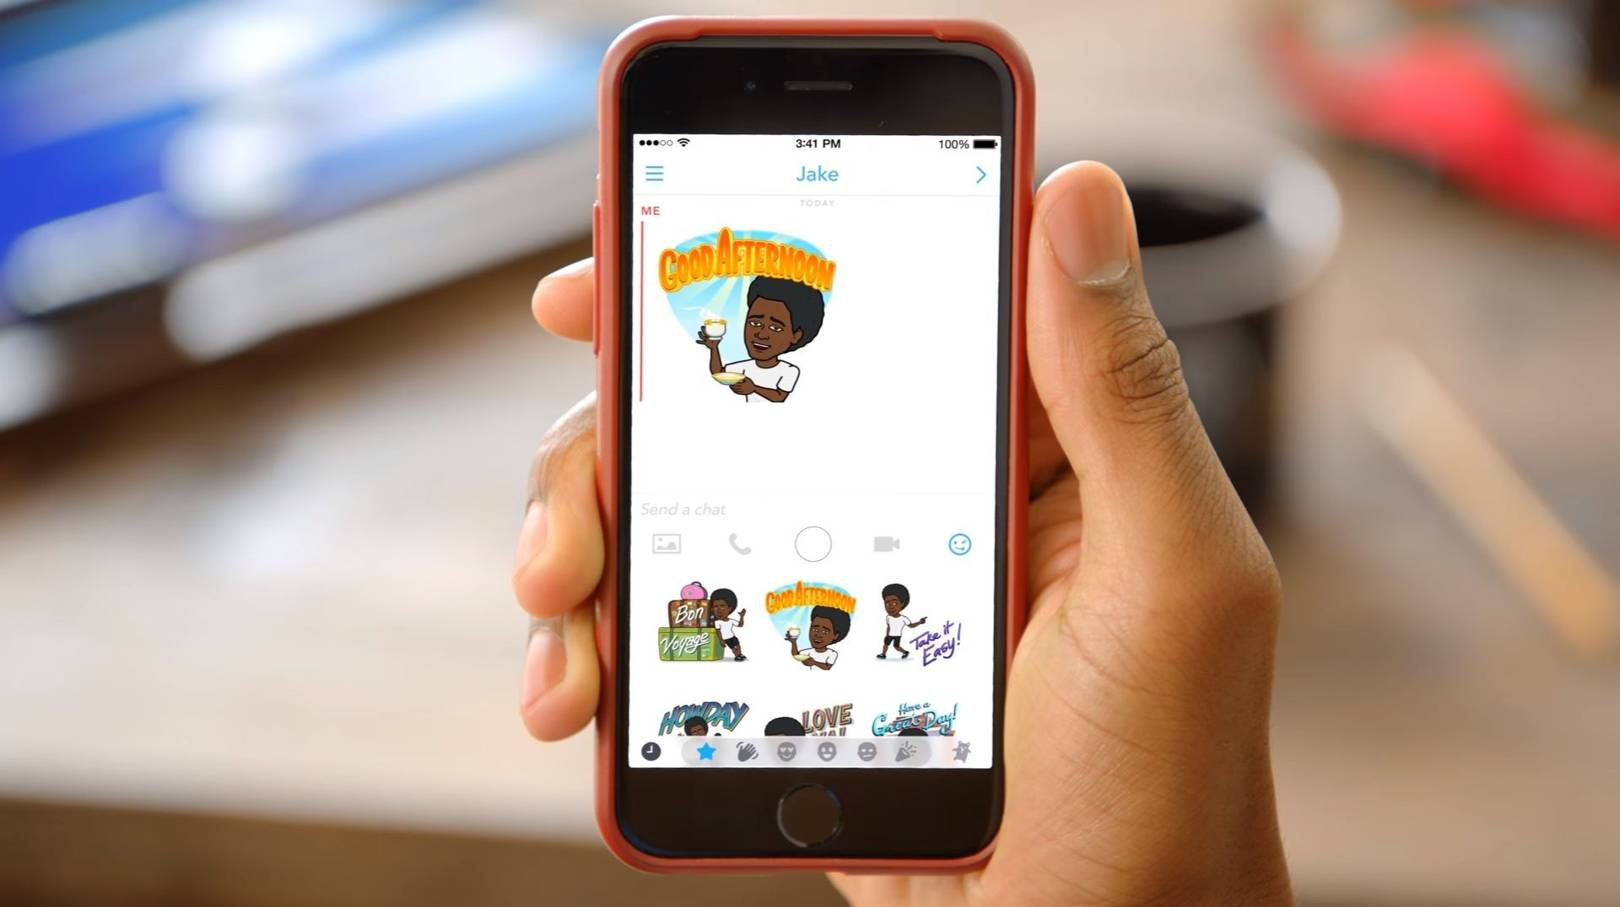 ef4dcc20be7 How to create personalised Bitmoji on Snapchat and use stickers on Snaps |  WIRED UK